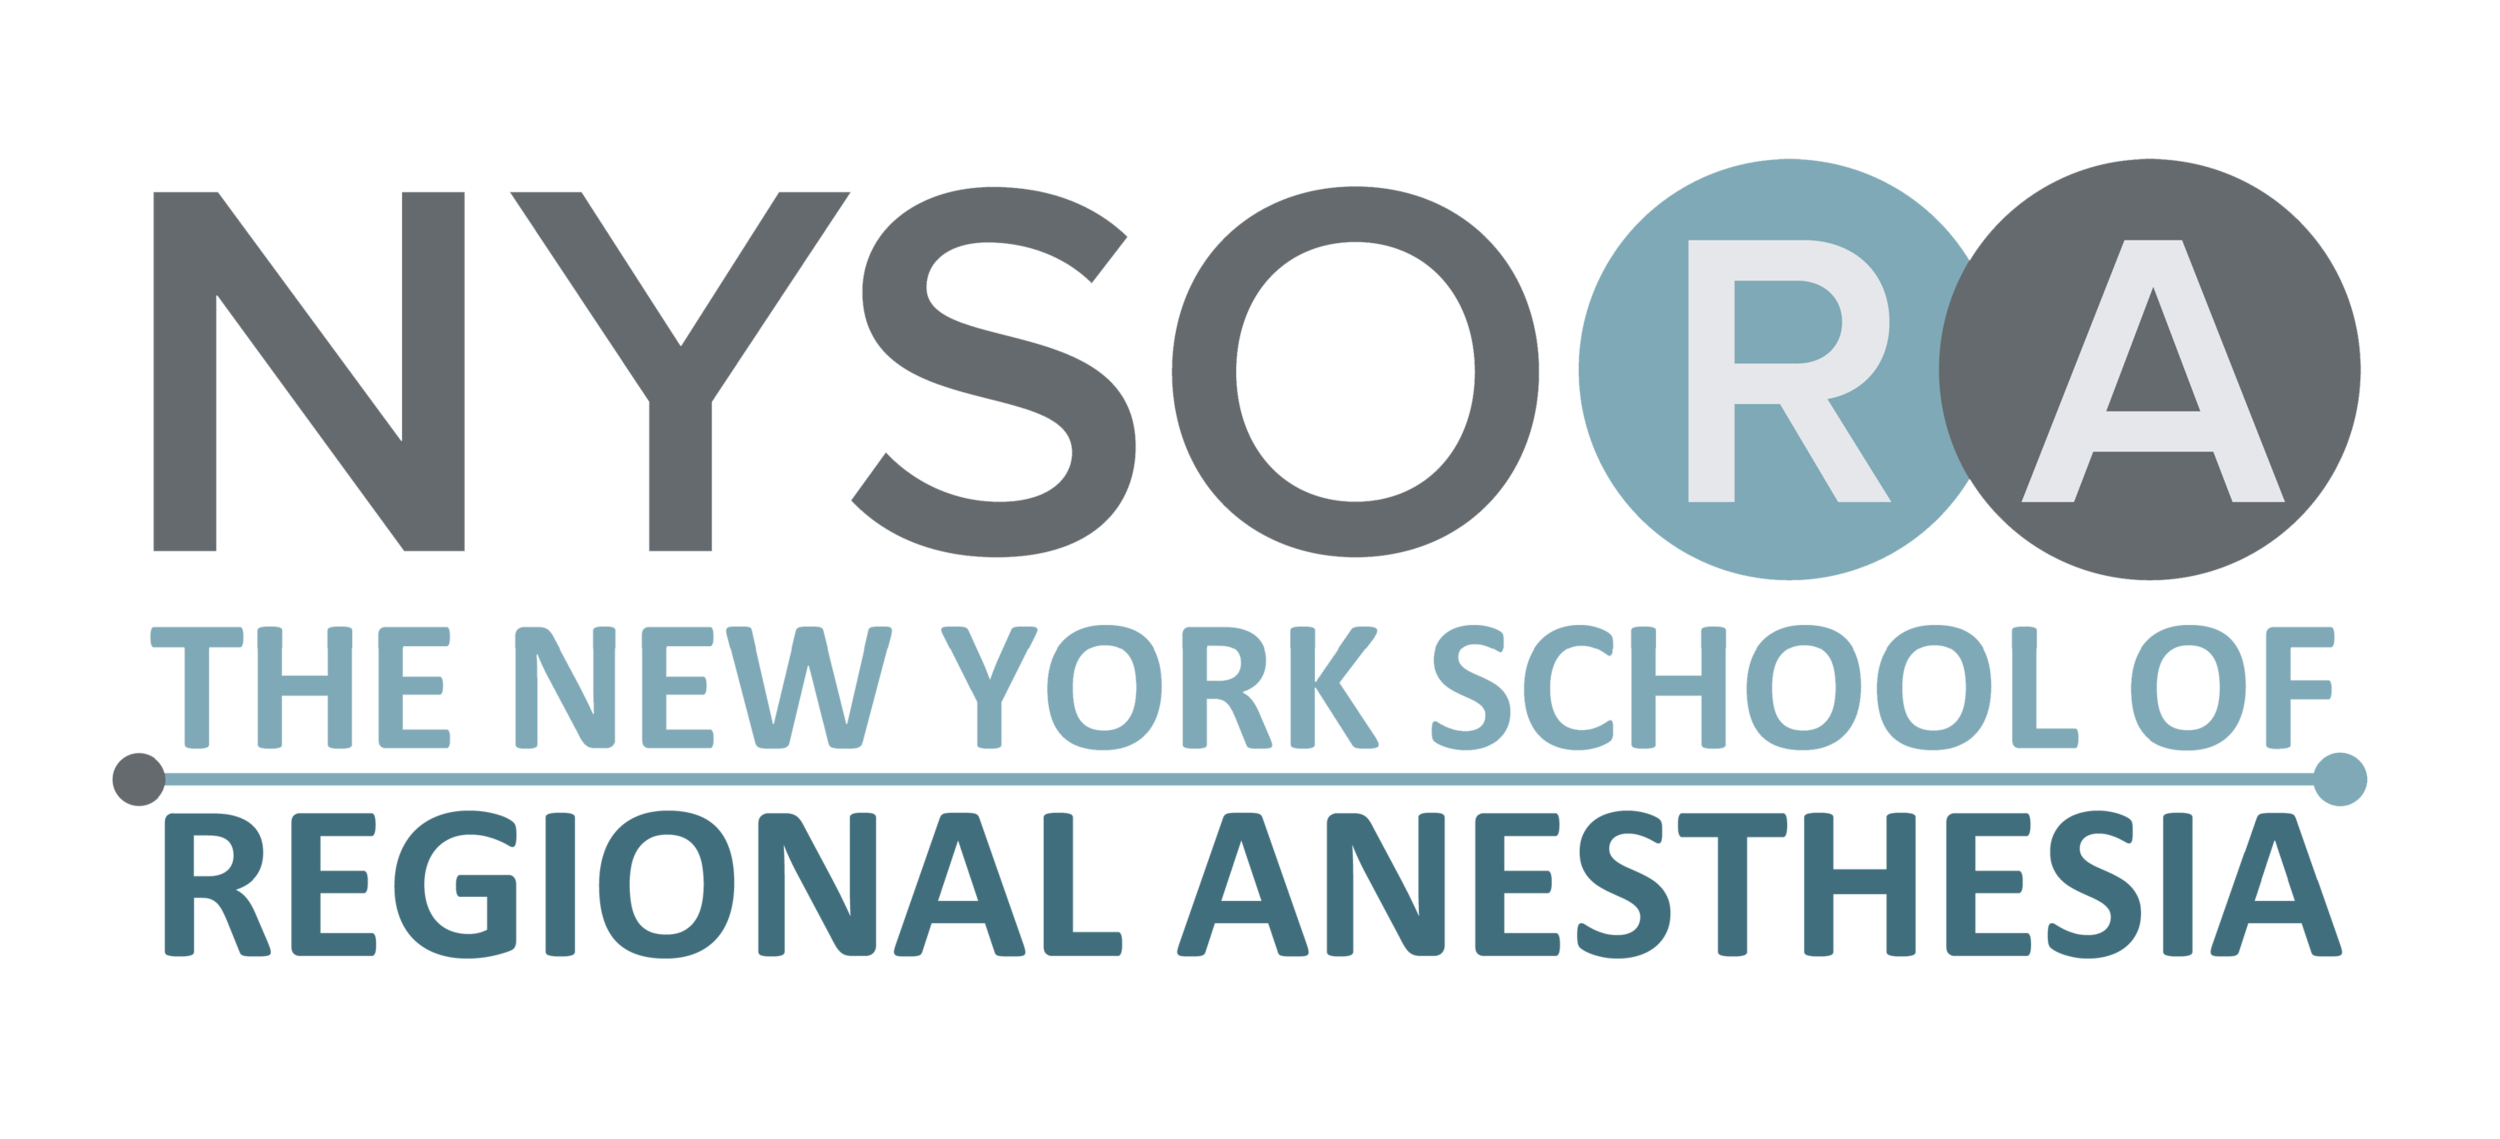 NYSORA - A step by step guide with images to pretty much every type of ultrasound guided nerve block you can imagine.